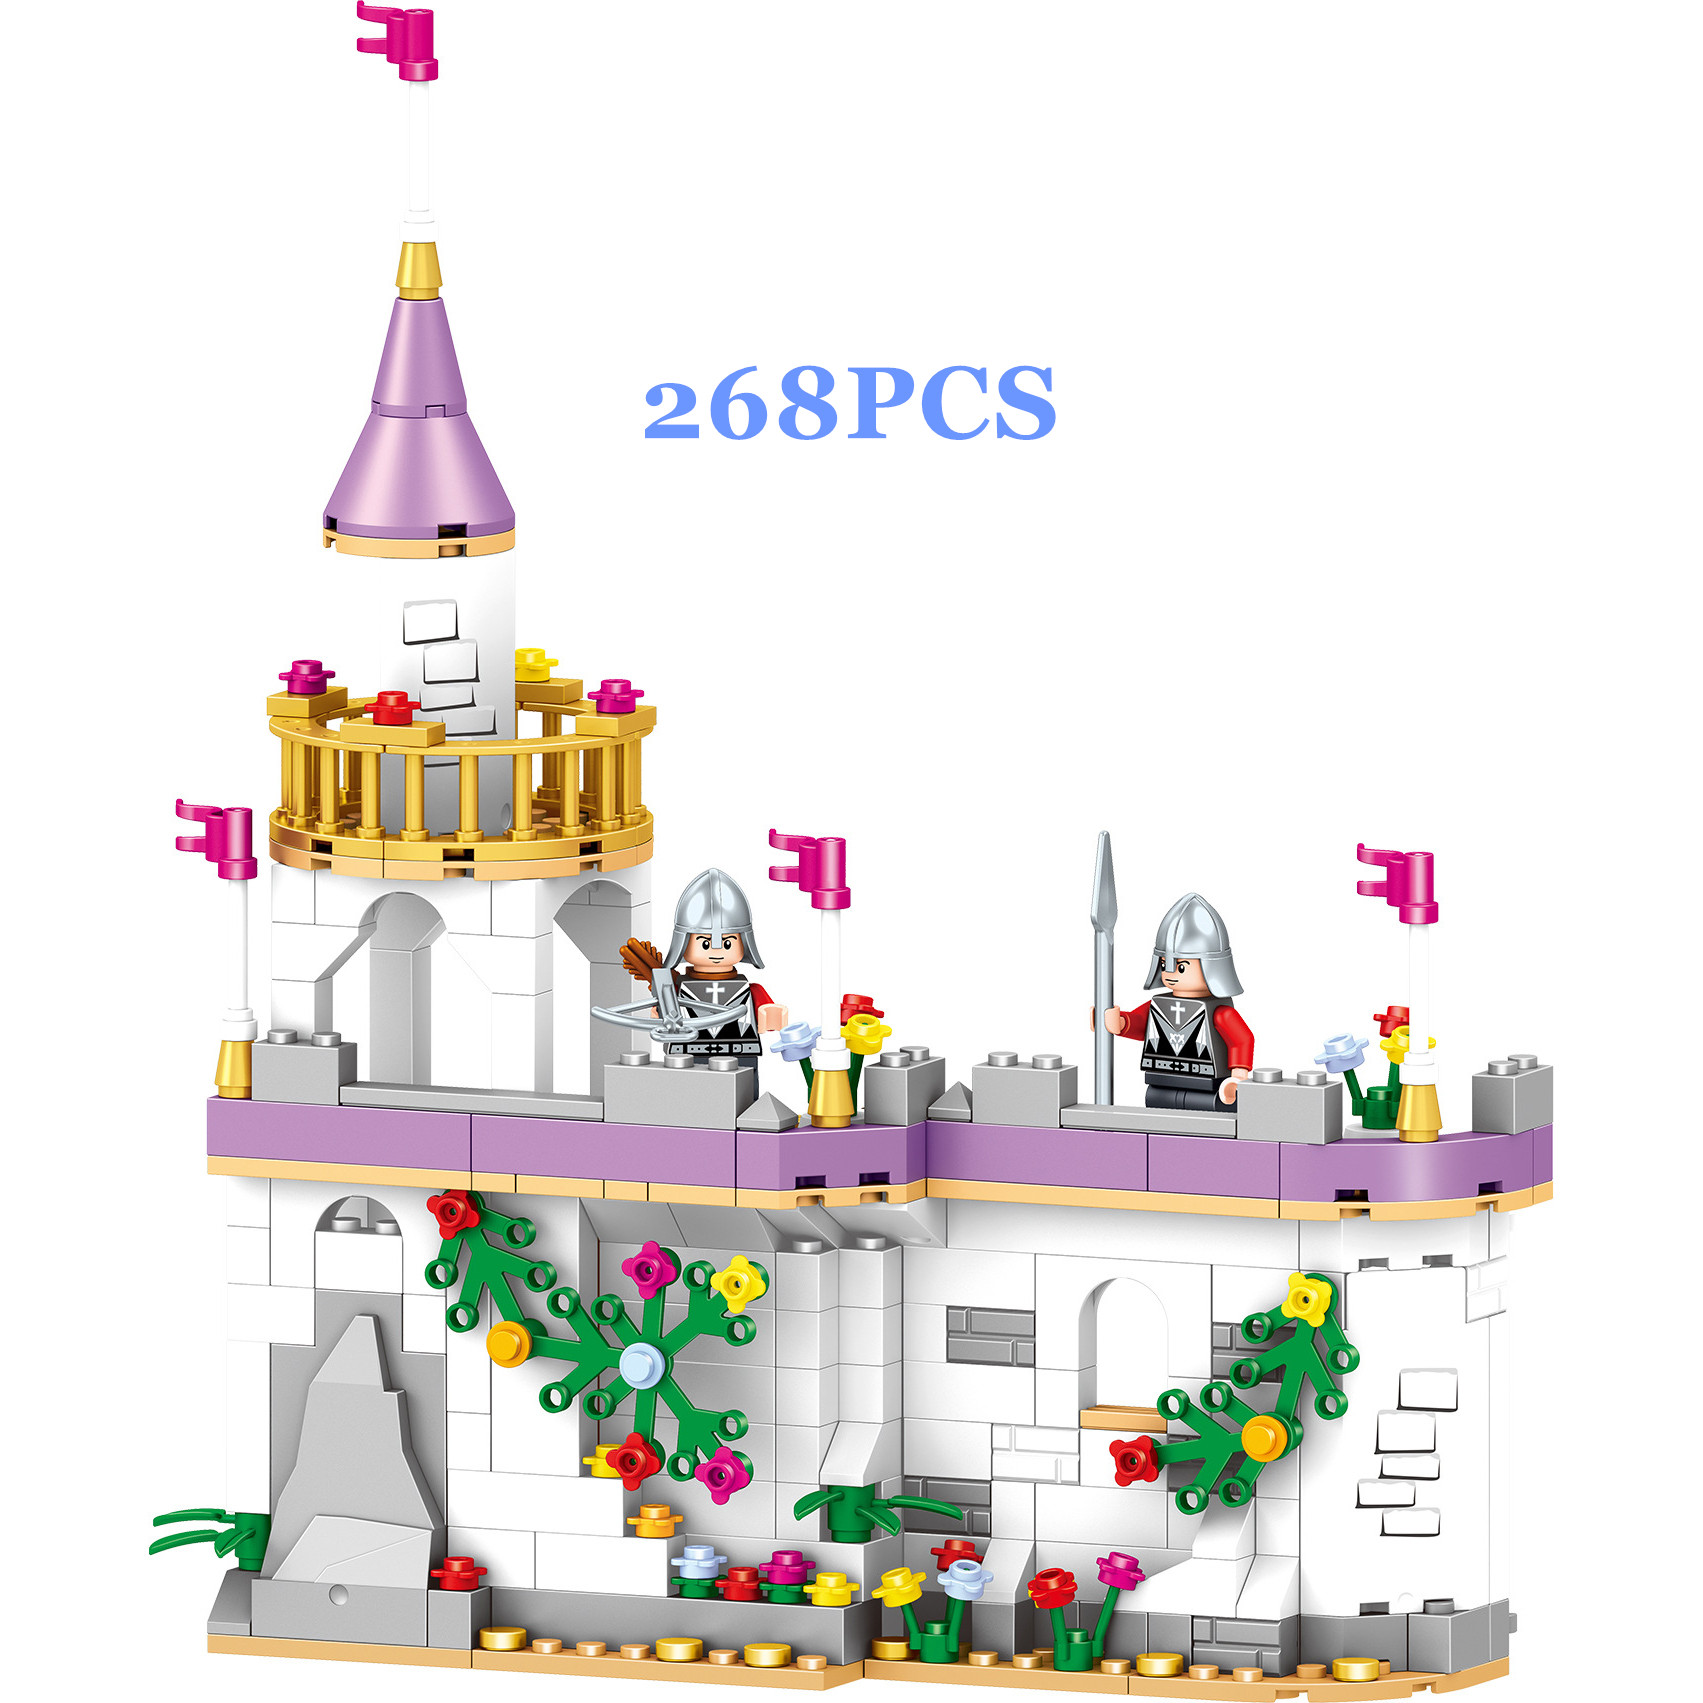 Image 5 - 731pcs Romantic Princess Castle Building Blocks Compatible With Legoed Girl Toys Gifts Kids Assembling Brick Friend Model Toys-in Blocks from Toys & Hobbies